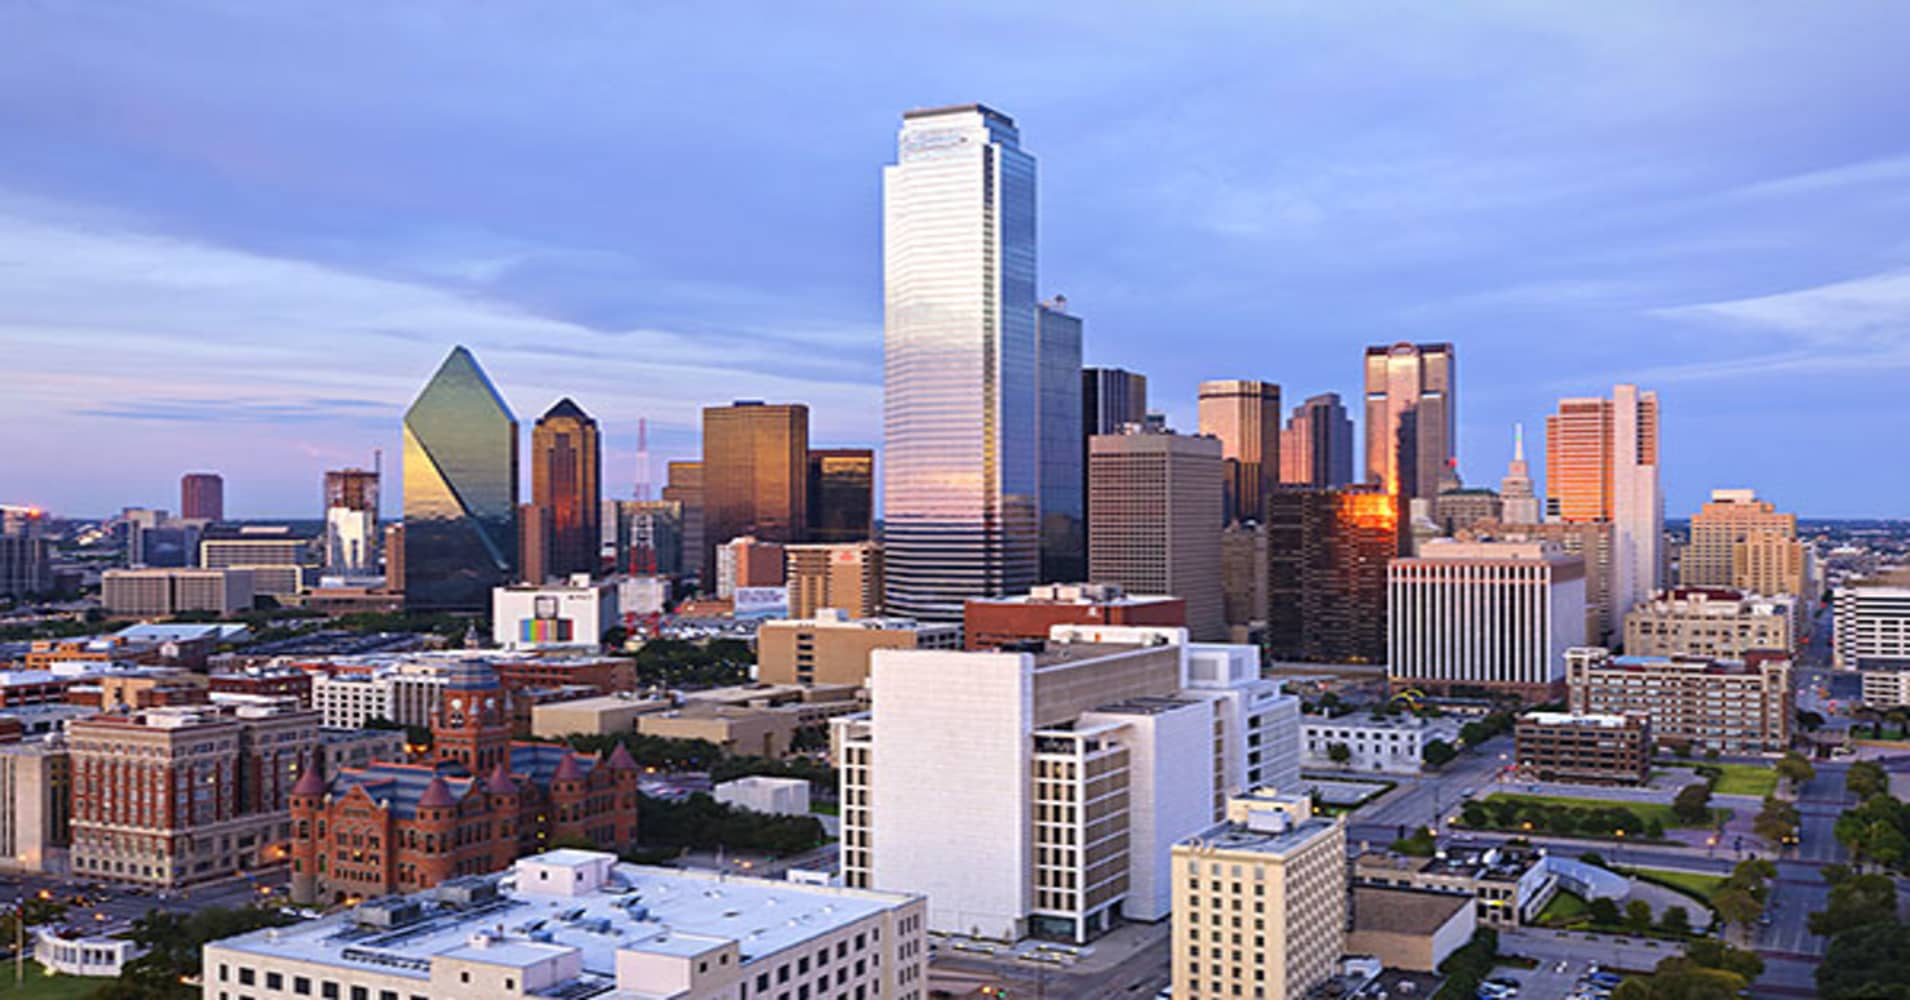 The Lone Star State has seen steady increases in financial sector employment, with a  in such jobs since 2000. One major Texas city that continues to see this type of job growth is Dallas.According to the Bureau of Labor Statistics, Dallas' local financial activities sector added  between April 2011 and 2012. One of the many financial companies operating there is Goldman Sachs, which maintains an office at 100 Crescent Court in Dallas.